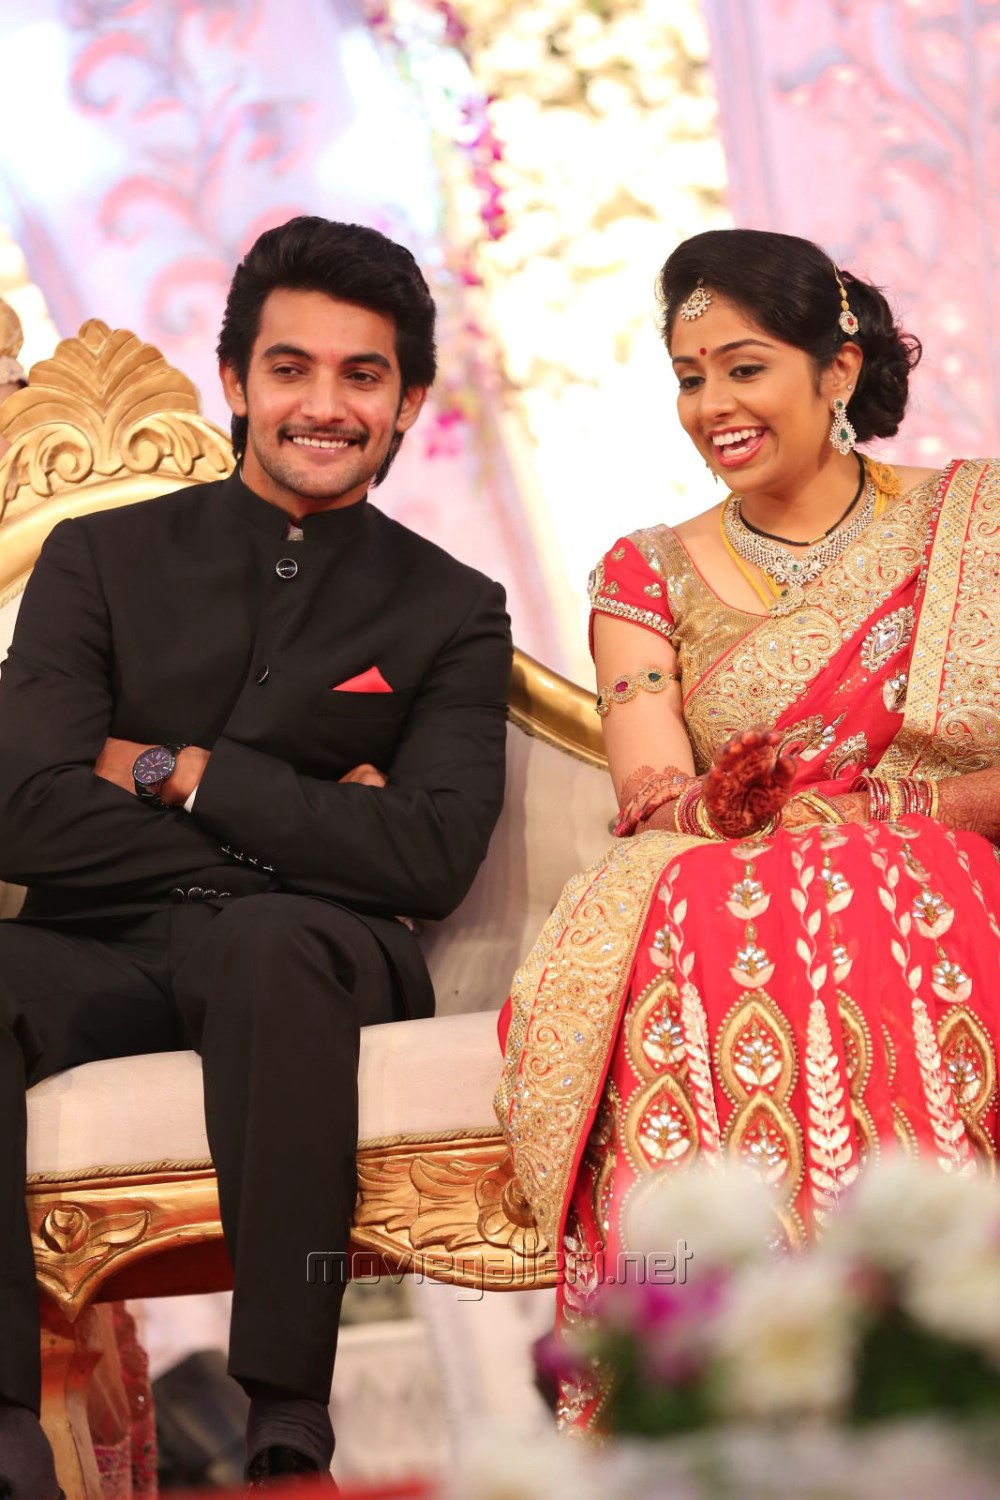 aadi pudipeddi wifeaadi pudipeddi wife, aadi pudipeddi wiki, aadi pudipeddi, aadi pudipeddi engagement, aadi pudipeddi marriage, aadi pudipeddi height, aadi pudipeddi age, aadi pudipeddi twitter, aadi pudipeddi facebook, aadi pudipeddi date of birth, aadi pudipeddi wife pregnant, aadi pudipeddi wedding, aadi pudipeddi rough movie